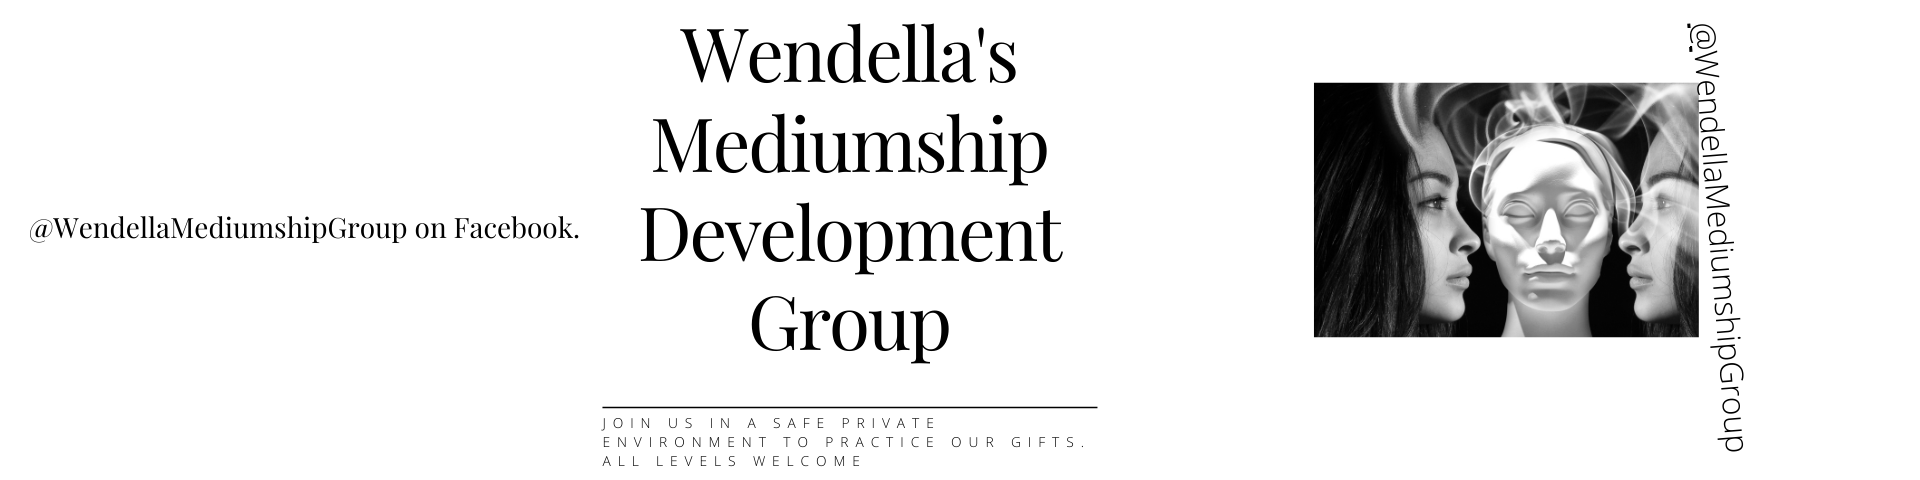 Wendella's Mediumship Development Group